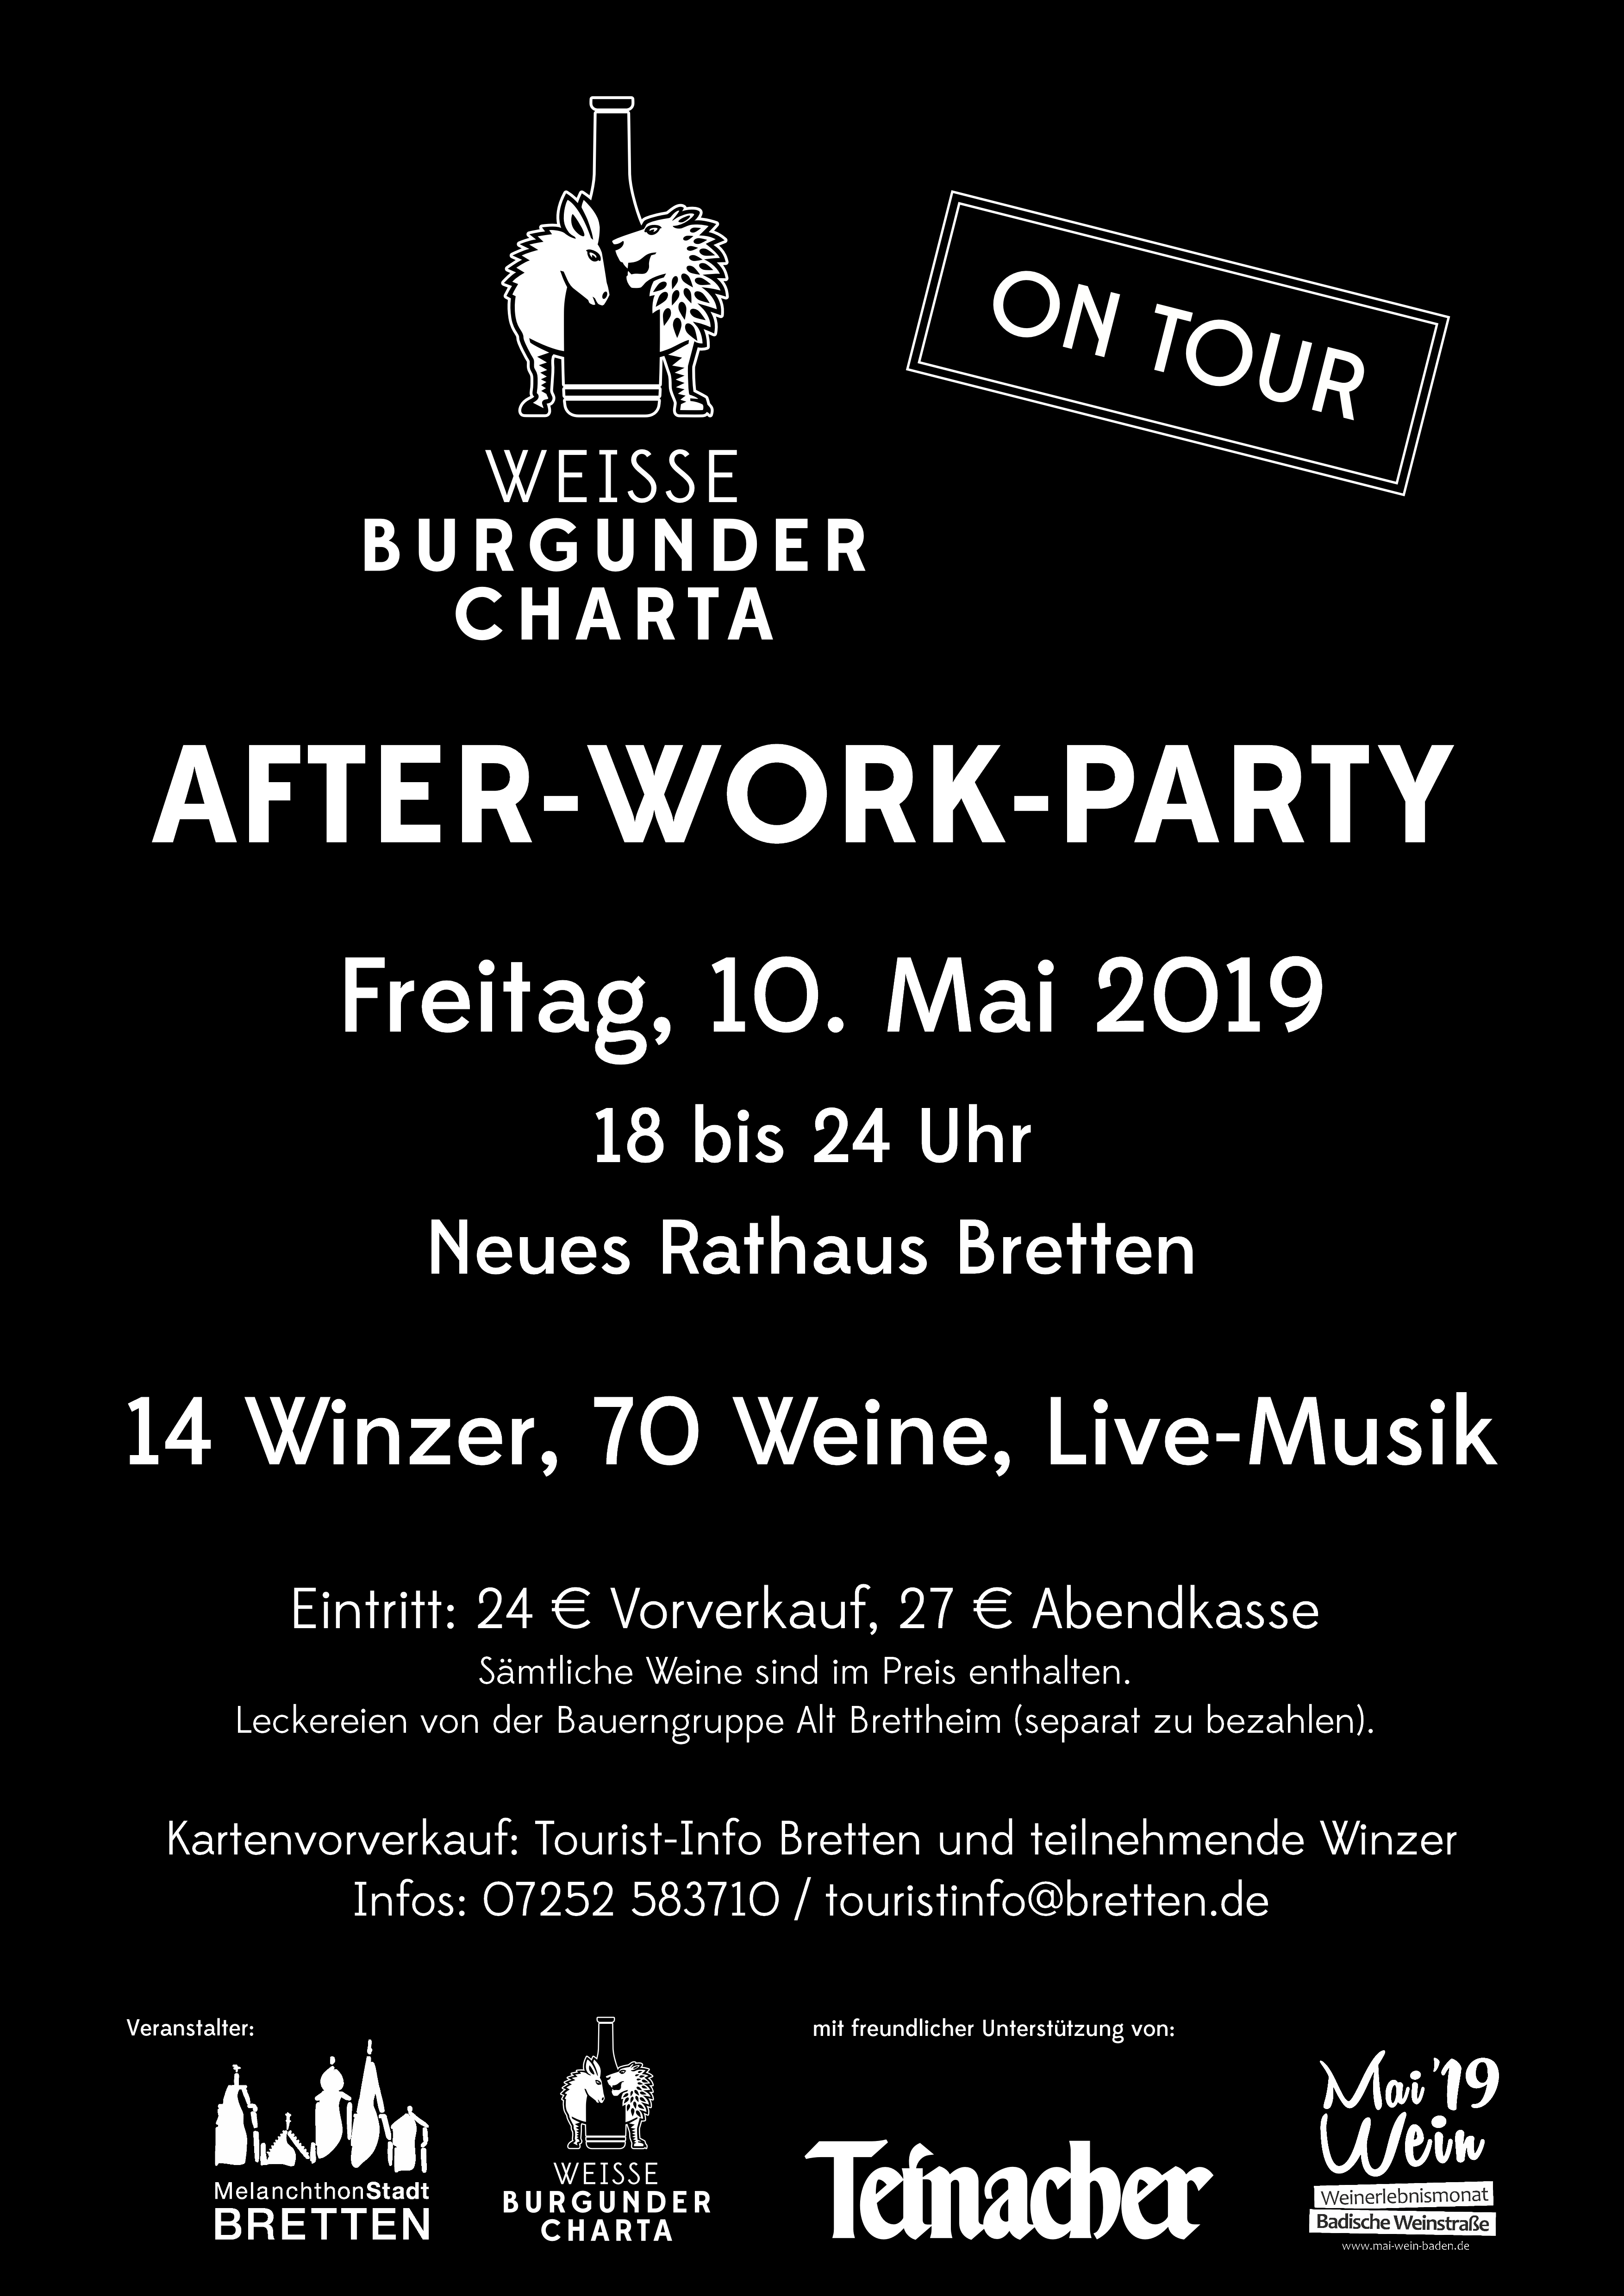 After-Work-Party